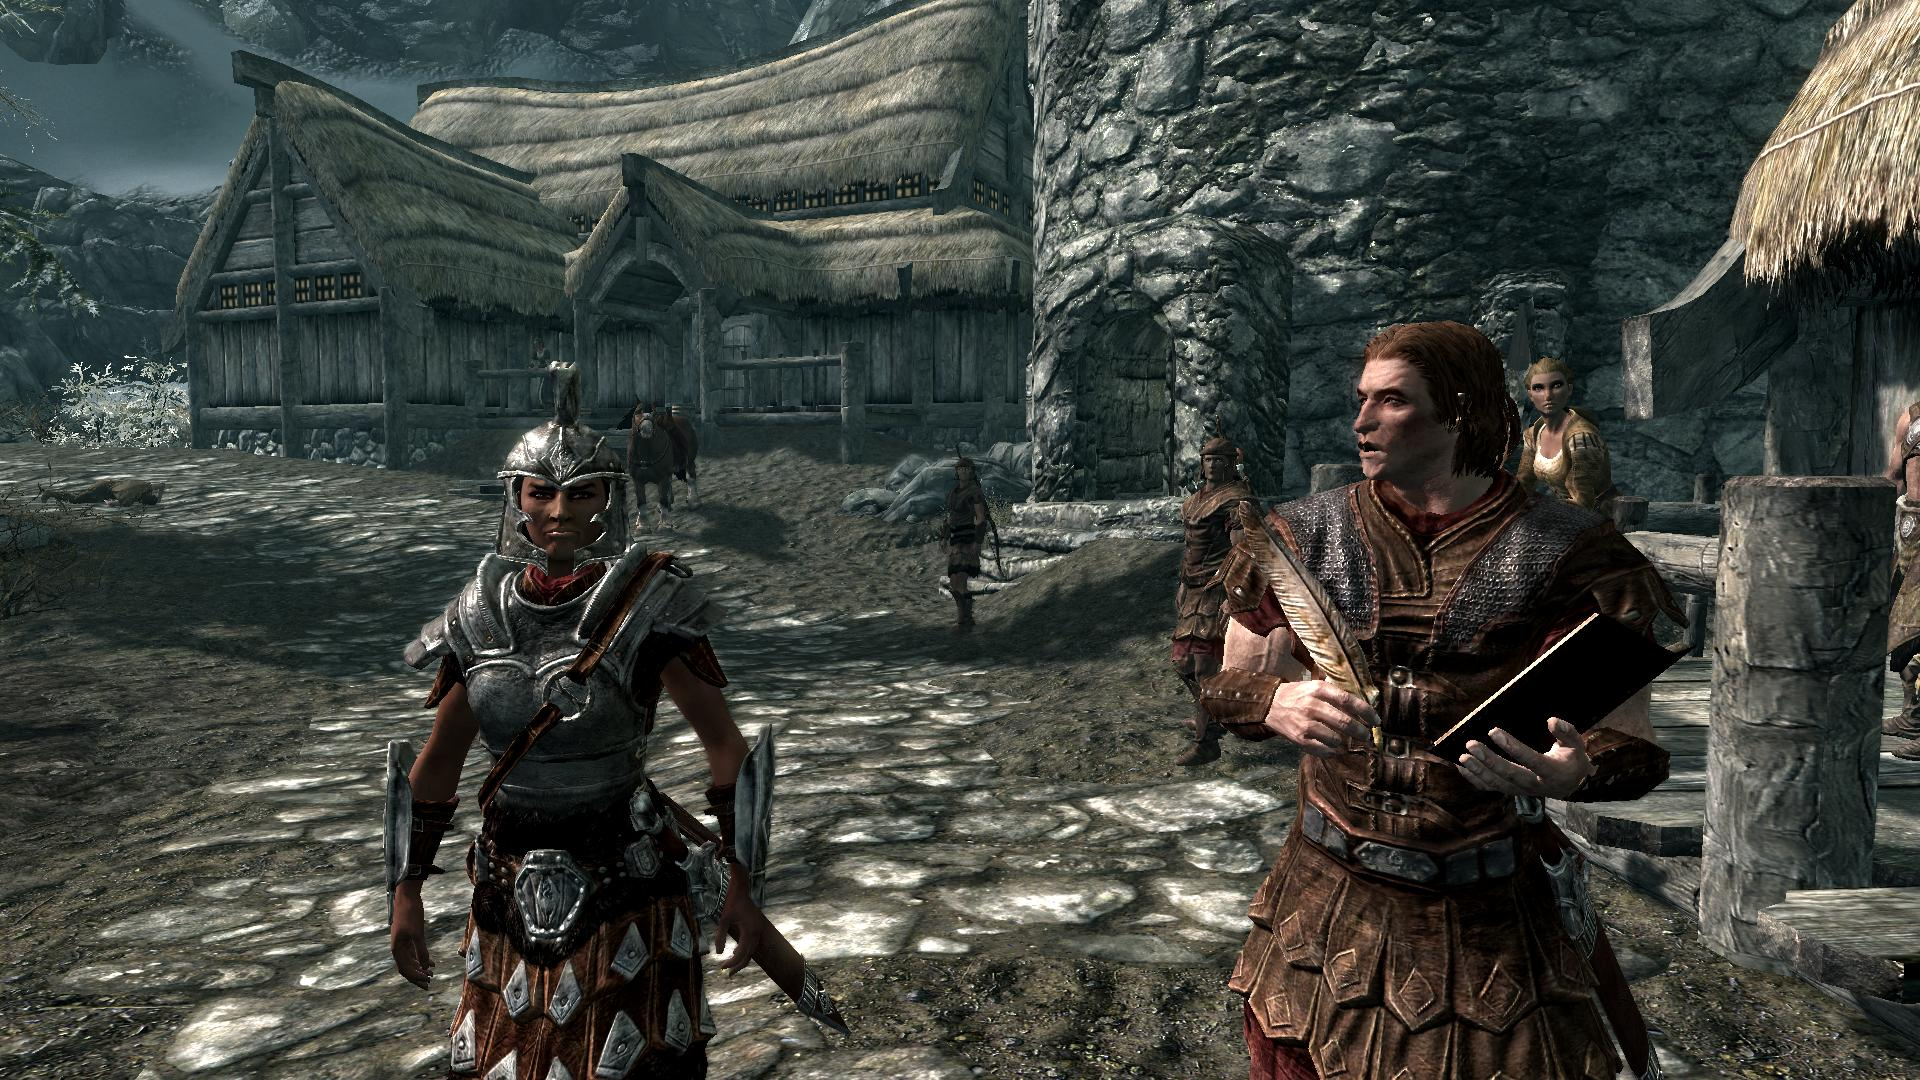 The Elder Scrolls V: Skyrim (Video Game 2011) - Photo